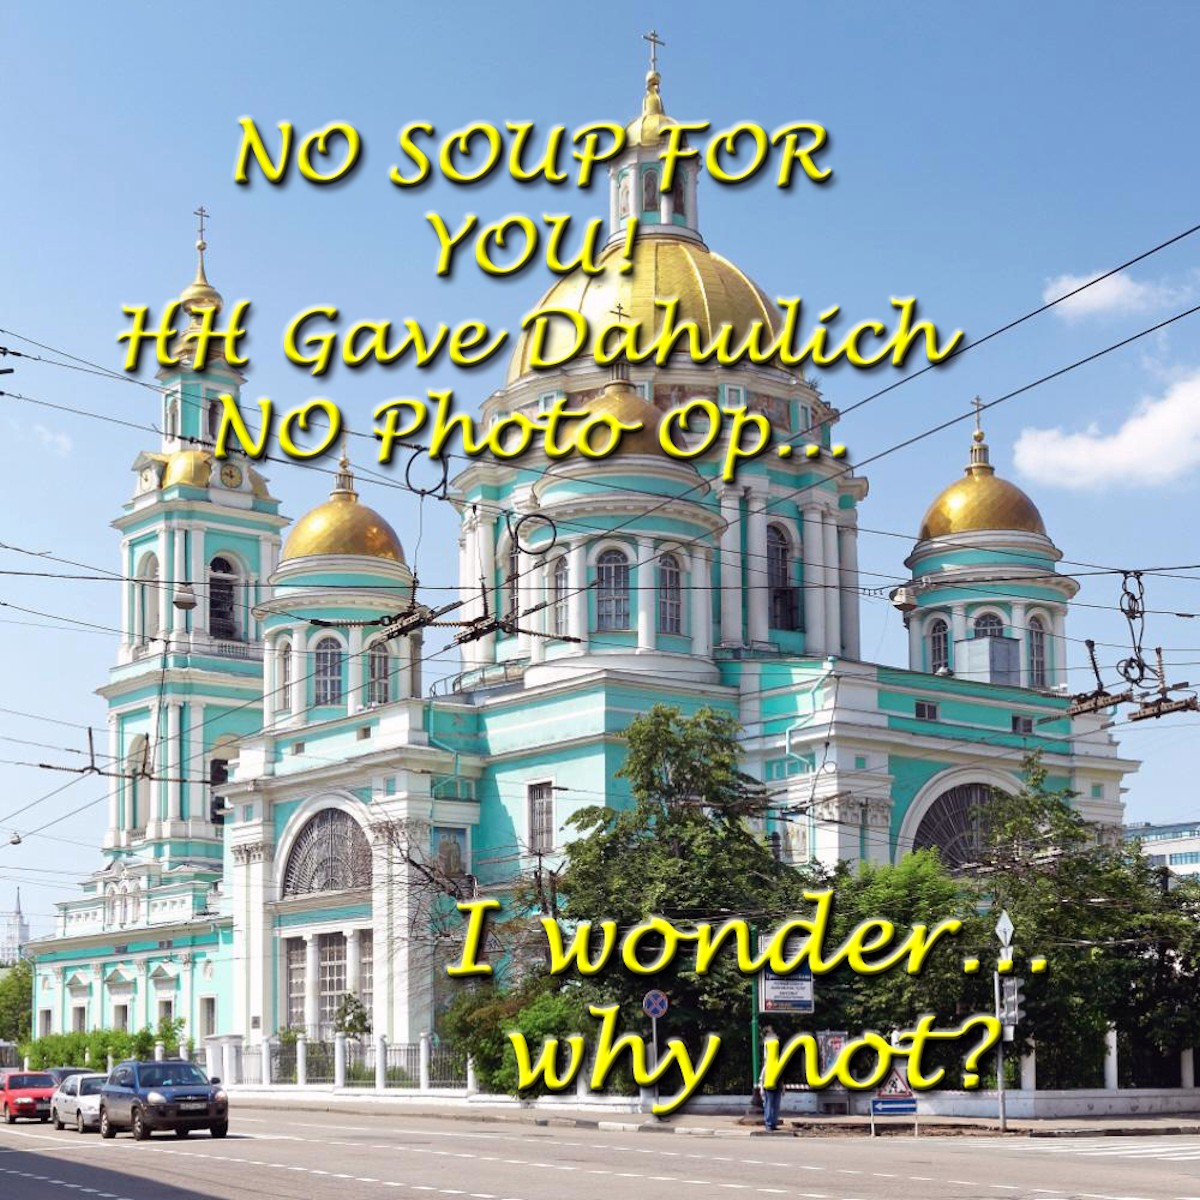 00 Epiphany Cathedral Yelokhovo. NO SOUP FOR YOU! 12.07.13